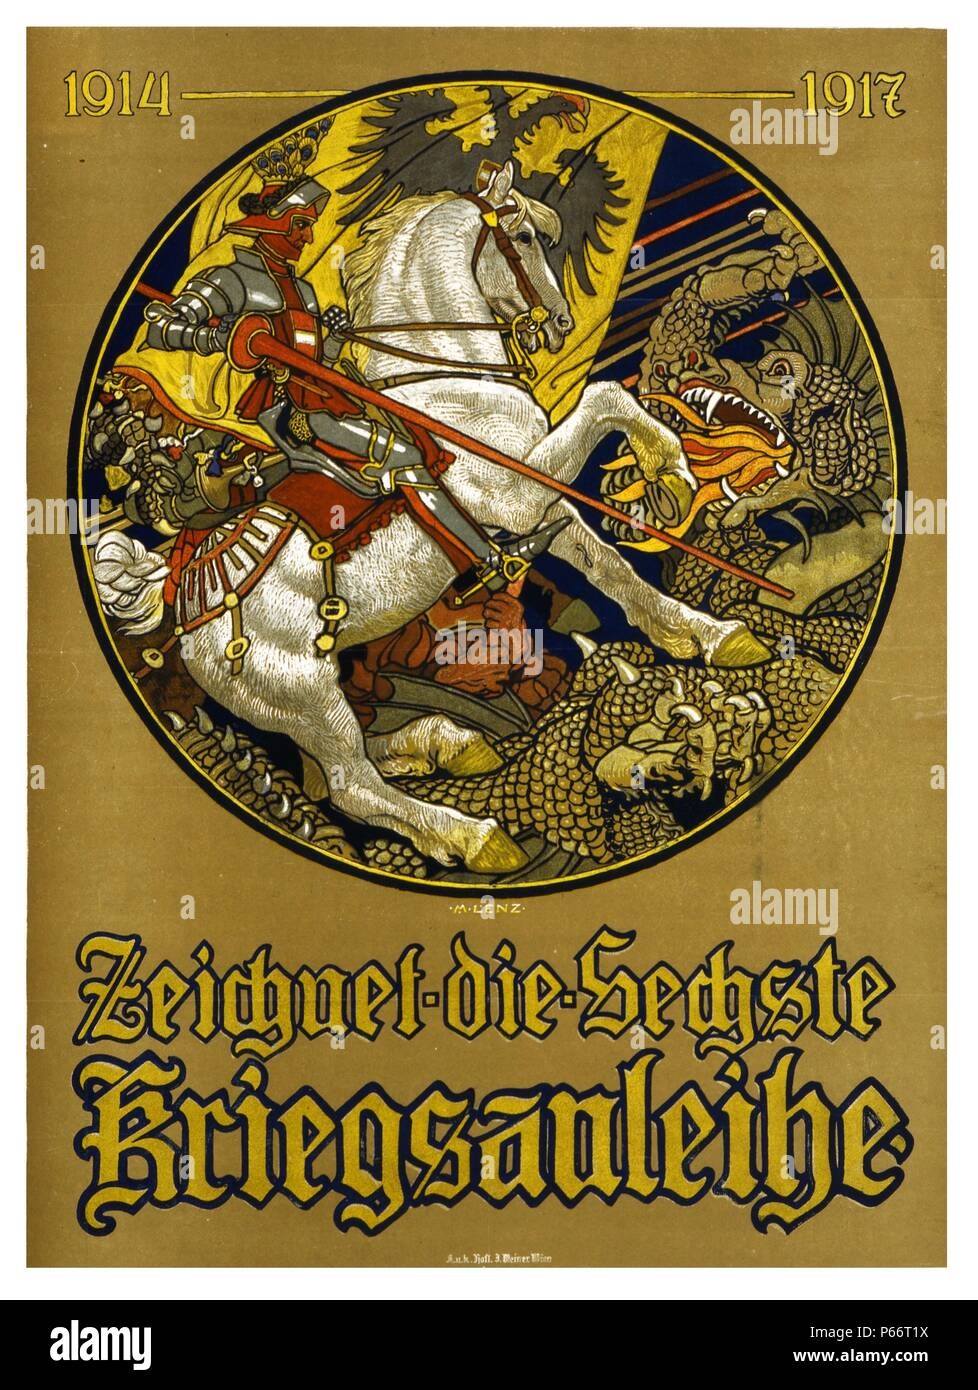 Zeichnet die sechste Kriegsanleihe, 1914-1917 by Maximilian Lenz, 1860-1948, artist. Published. Poster shows a knight on horseback, with the Austro-Hungarian banner behind him, slaying a dragon. Text: Subscribe to the 6th War Loan. 1917 - Stock Image